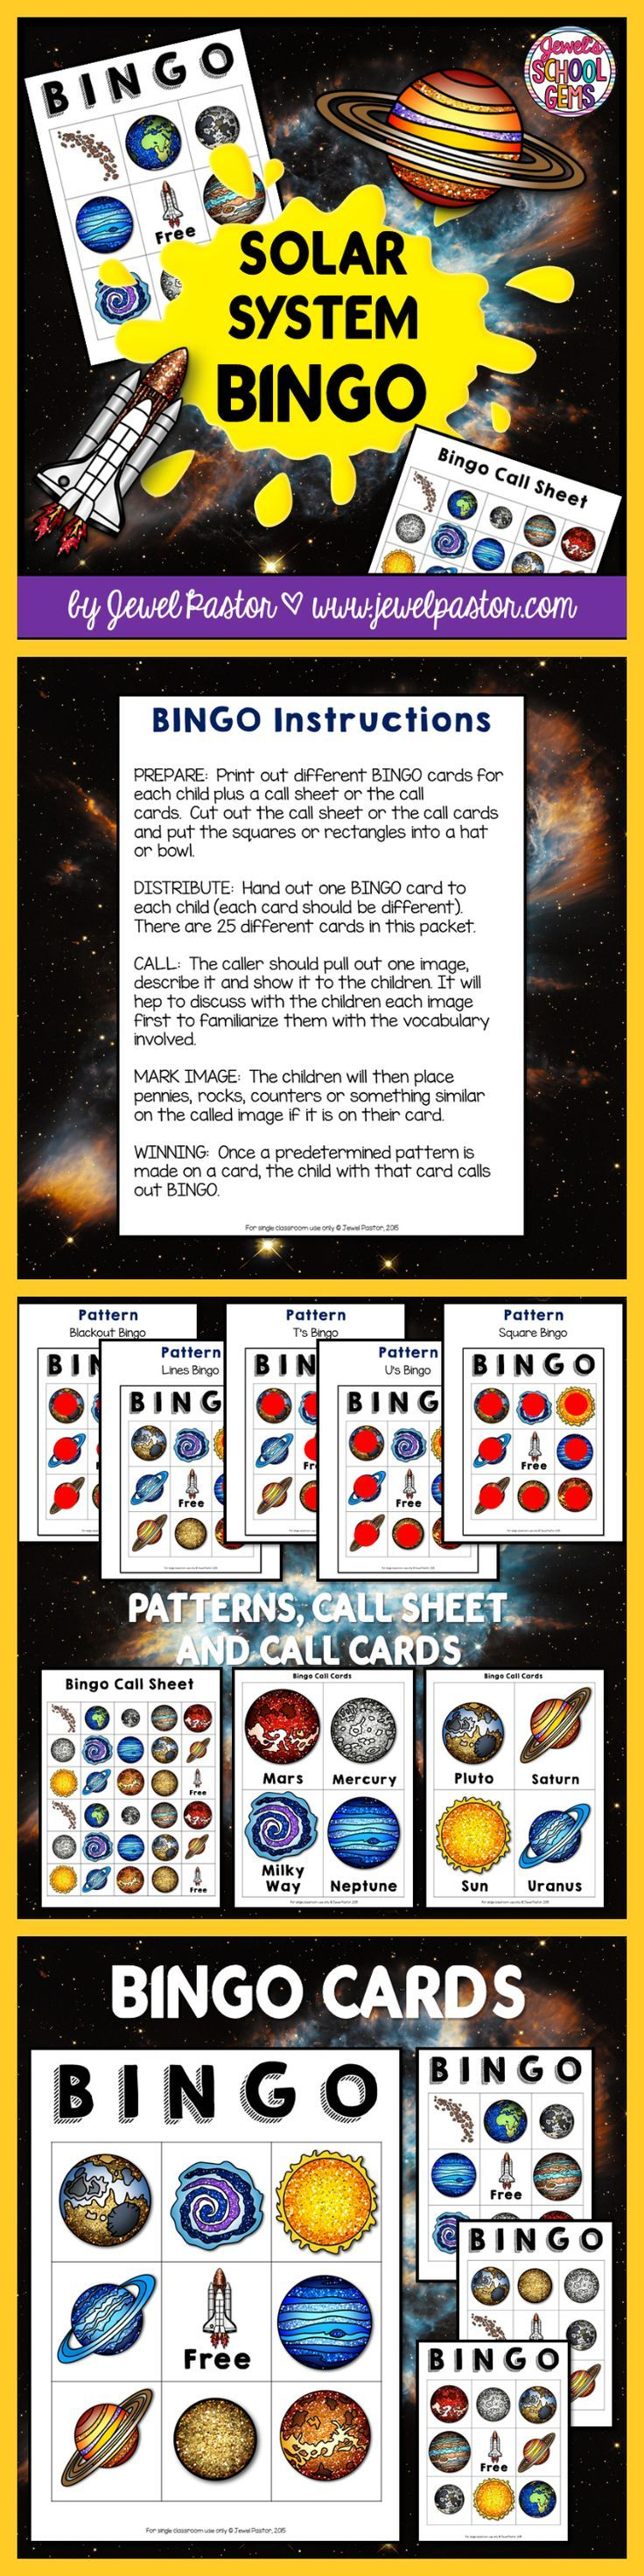 Solar System  SOLAR SYSTEM BINGO  In search of Solar System activities? This 40-page Solar System resource consists of bingo cards, a call sheet and call cards that can be used to study the Solar System.